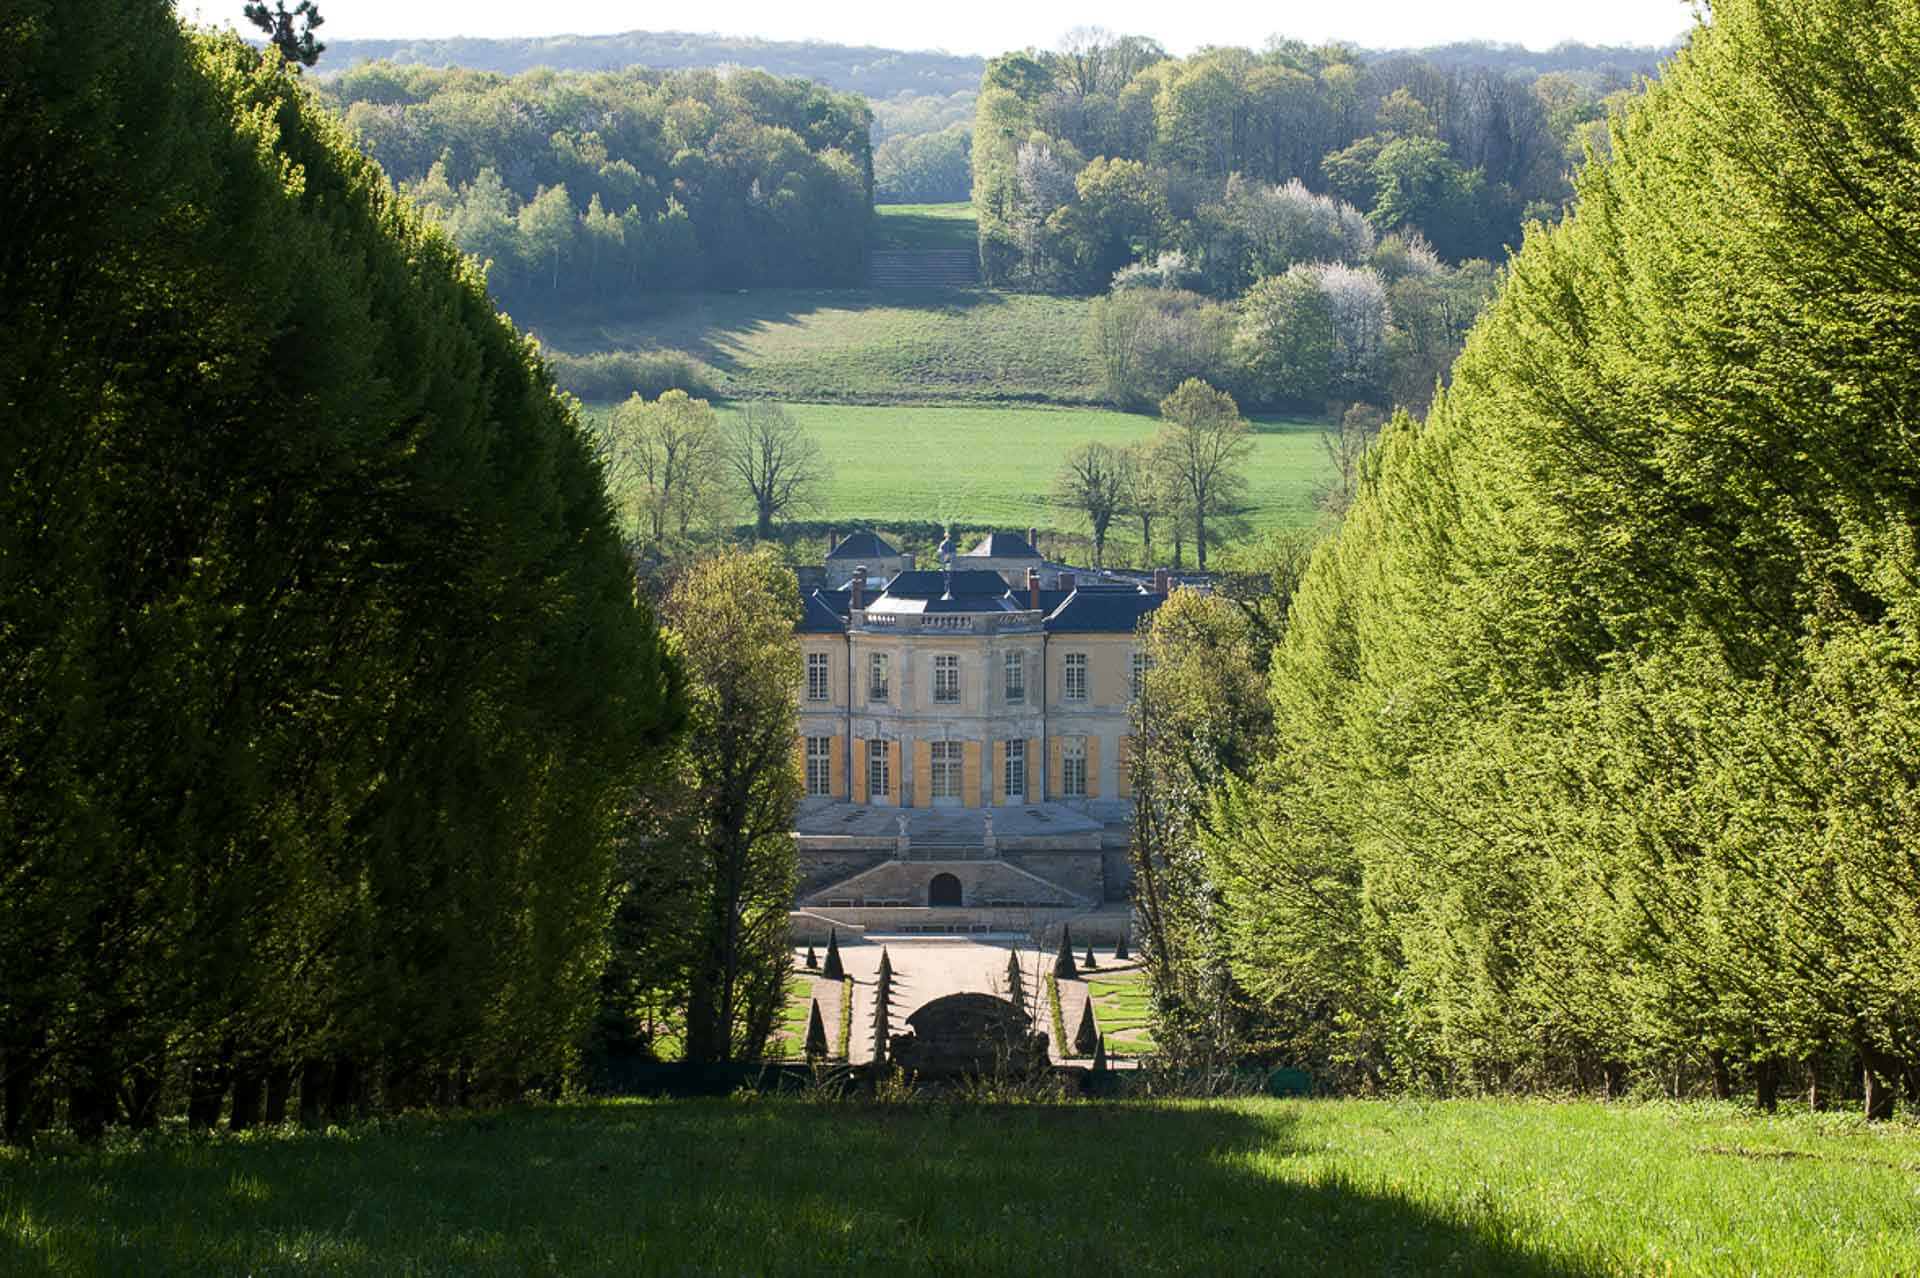 Chateau de Villette private estate dream venue for wedding reception ceremony offering luxury accommodation night stay magnificent garden collection of antique furniture